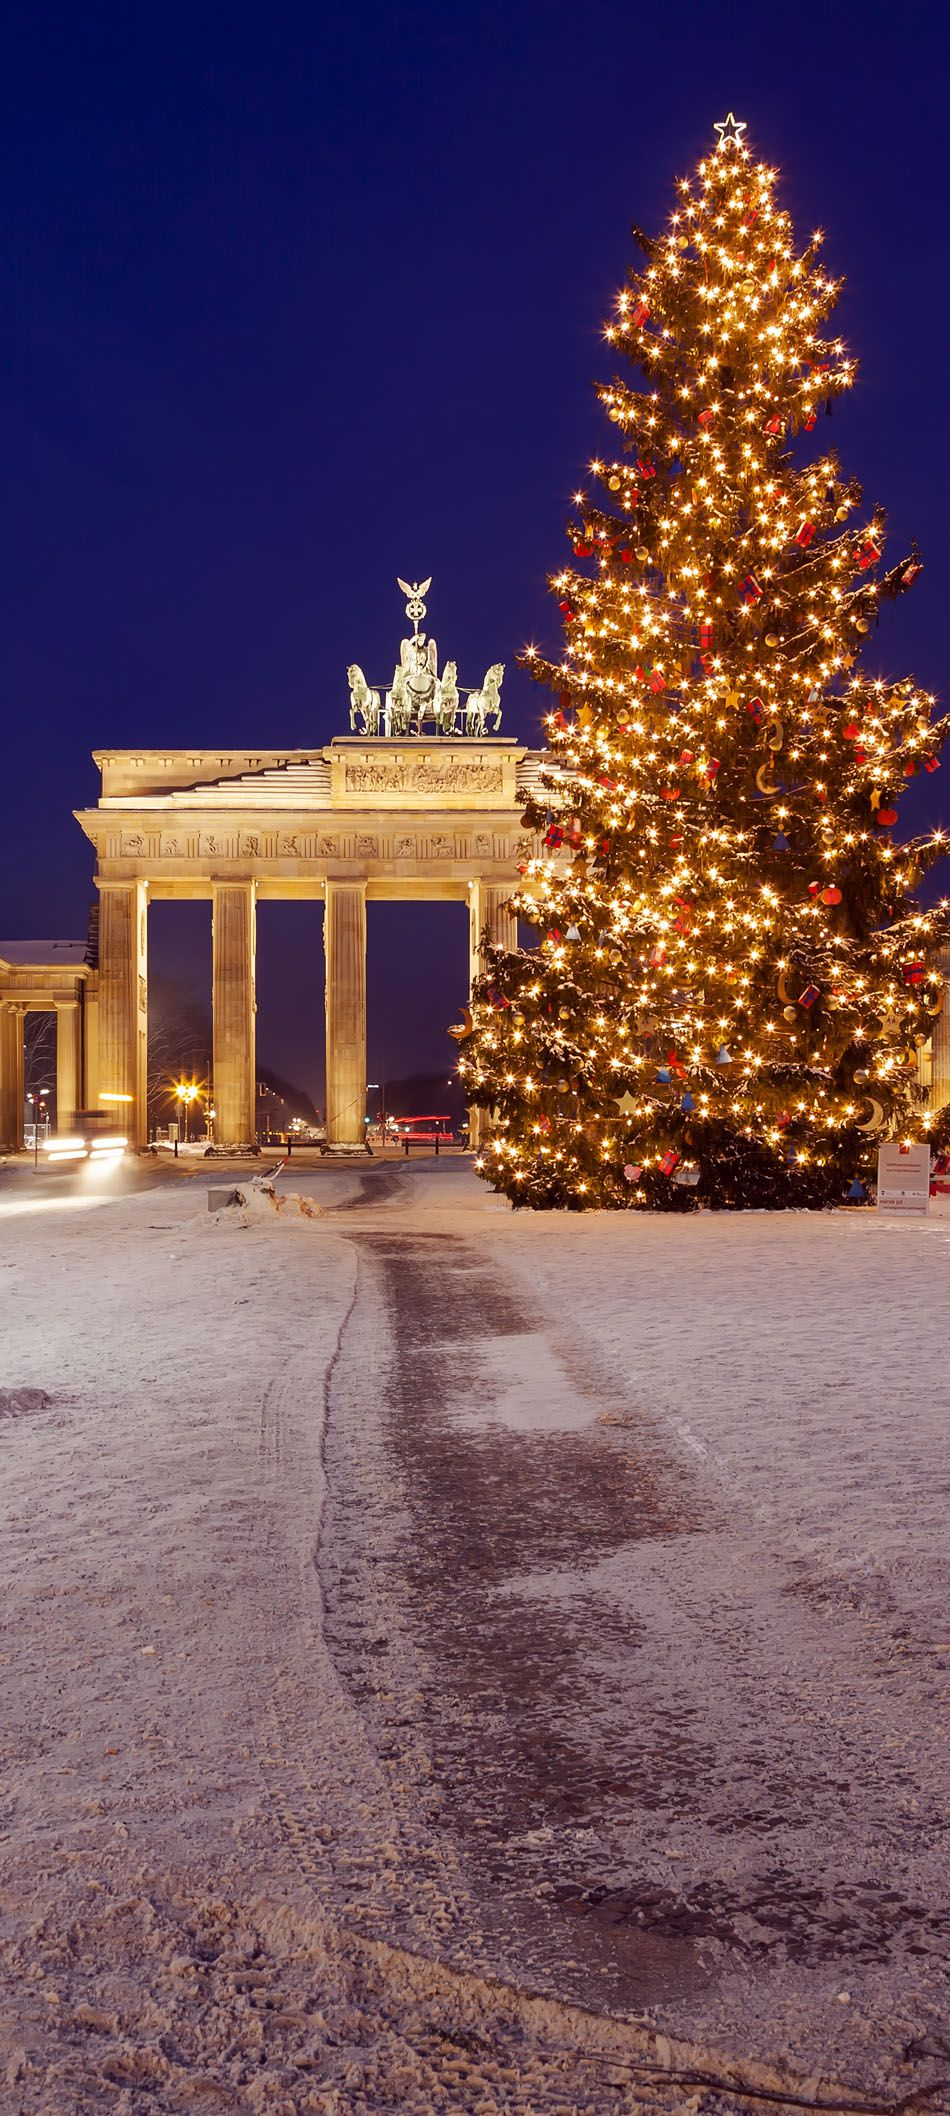 25 Impressive Photos Of Christmas Celebrations Around The World 17 Is Awesome Christmas In Germany Celebration Around The World Brandenburg Gate